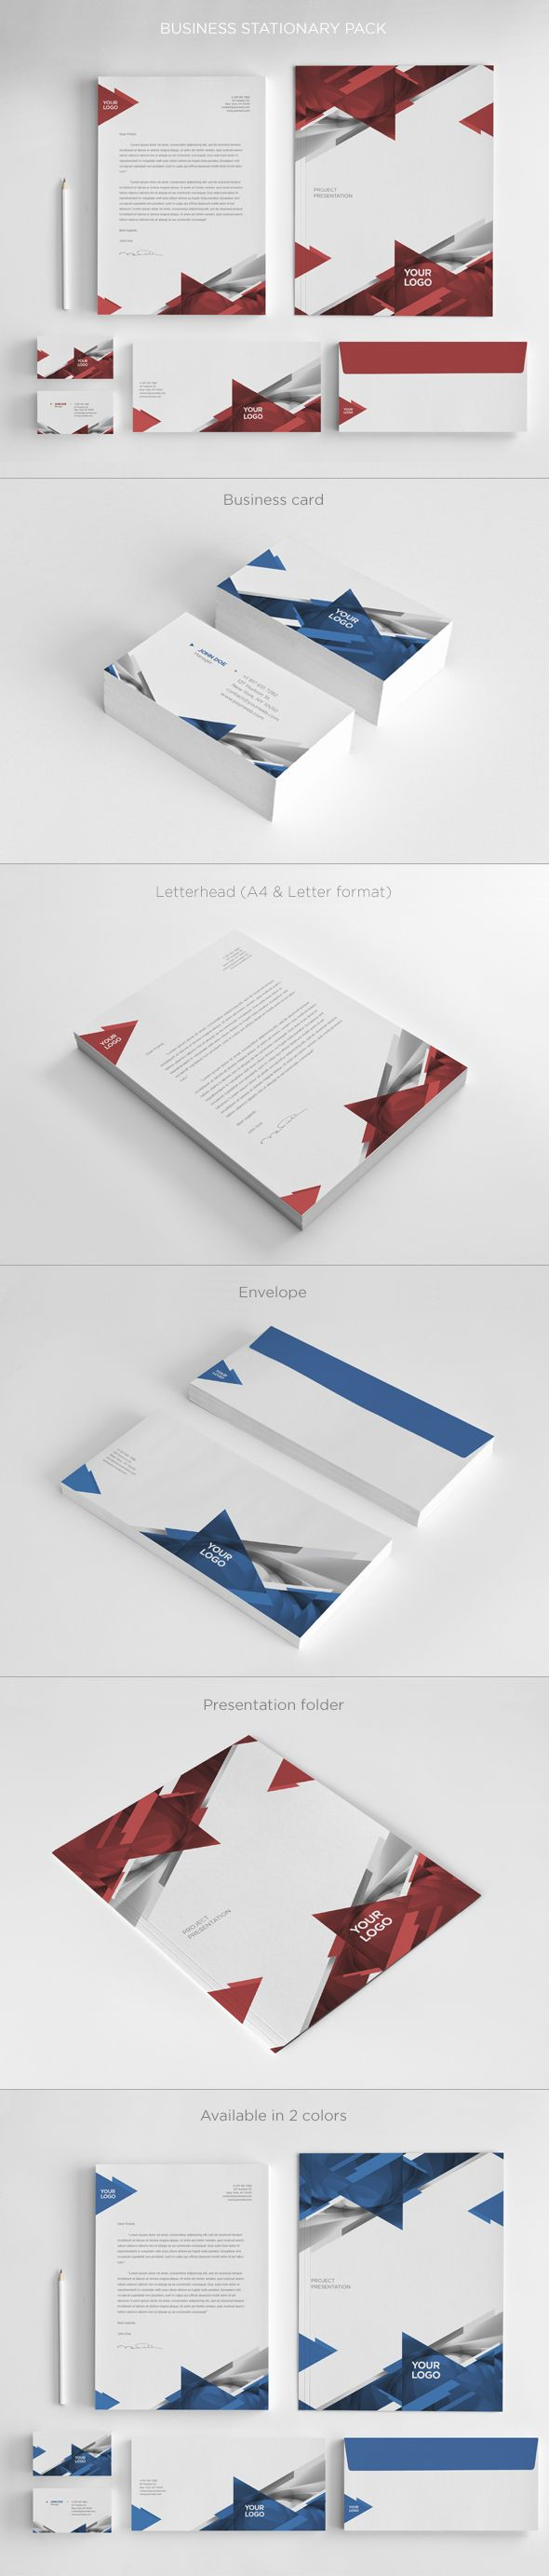 Business Stationary Pack. Download here: http://graphicriver.net/item/business-stationary-pack/4706850?ref=abradesign #design #stationary